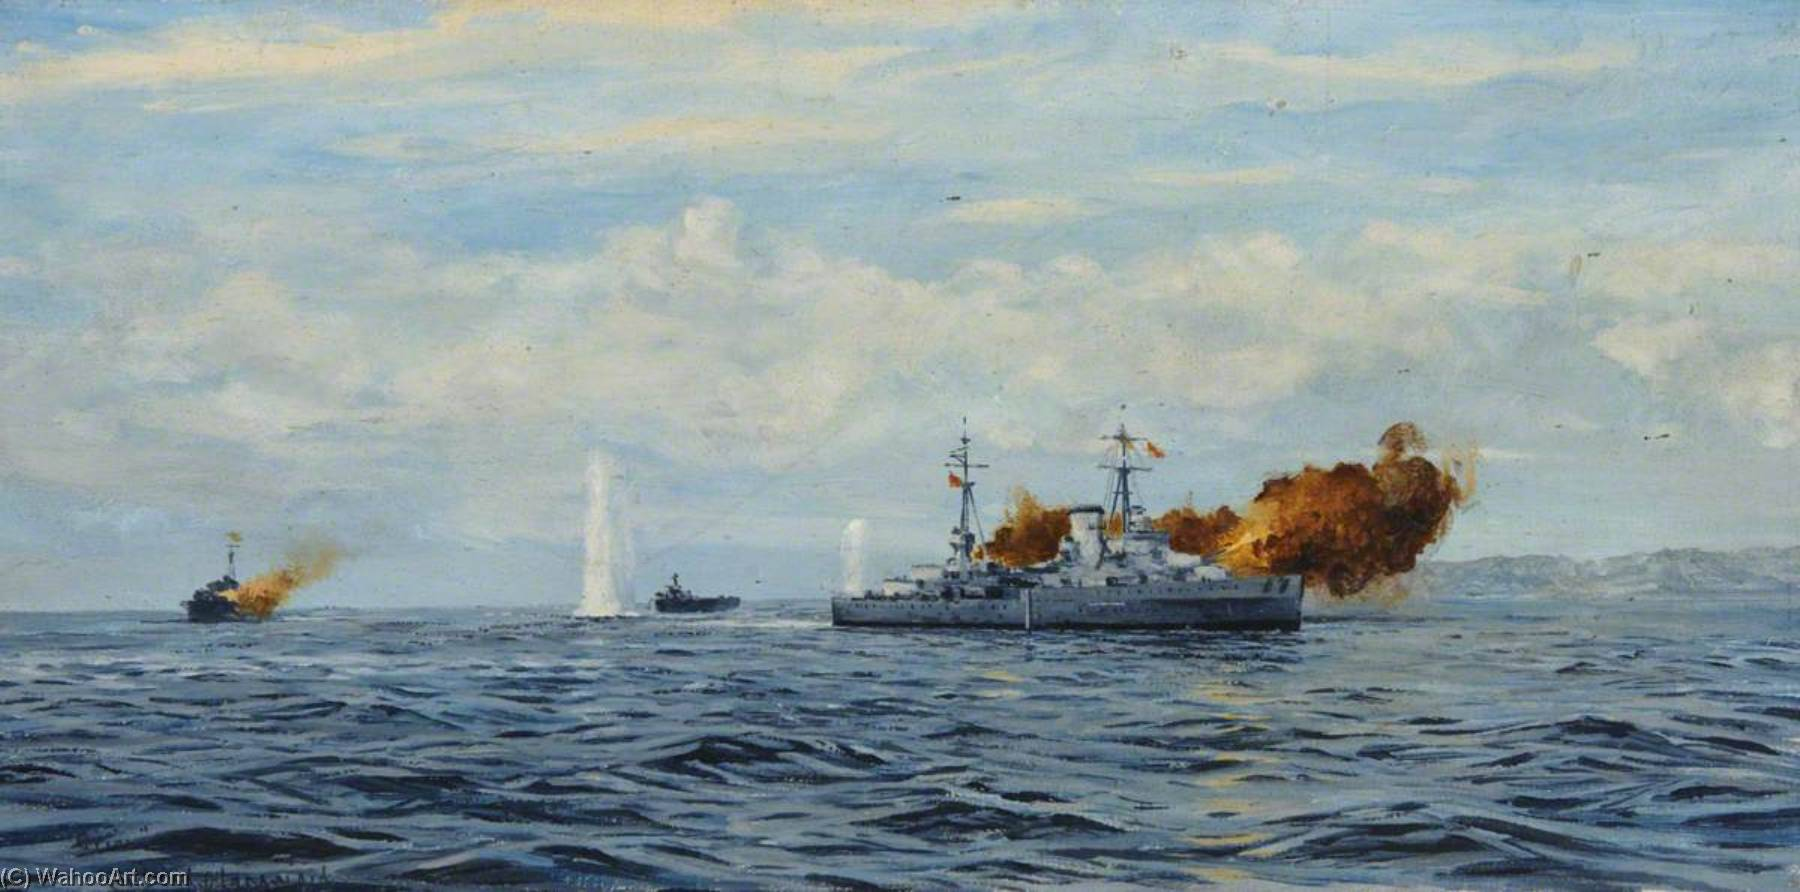 HMS 'Orion' 砲撃 a 海岸, キャンバス年石油 バイ Rowland Langmaid